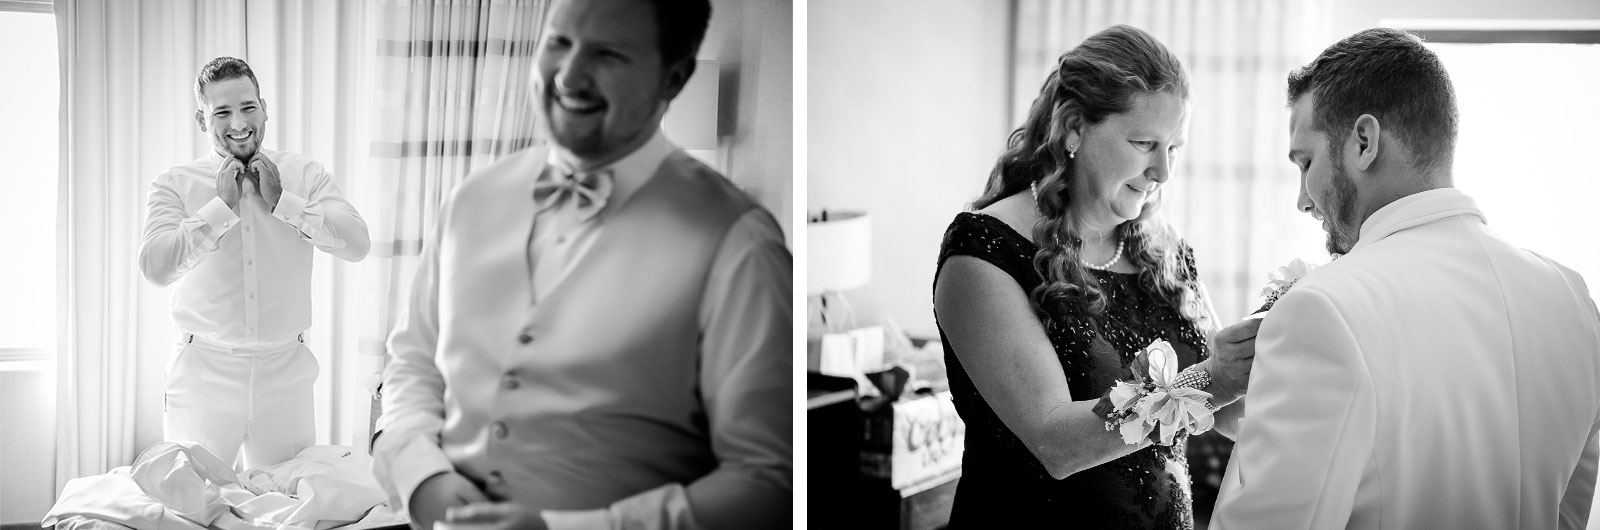 Eric_and_Christy_Photography_Blog_Wedding_Eva_Andrew-4-5